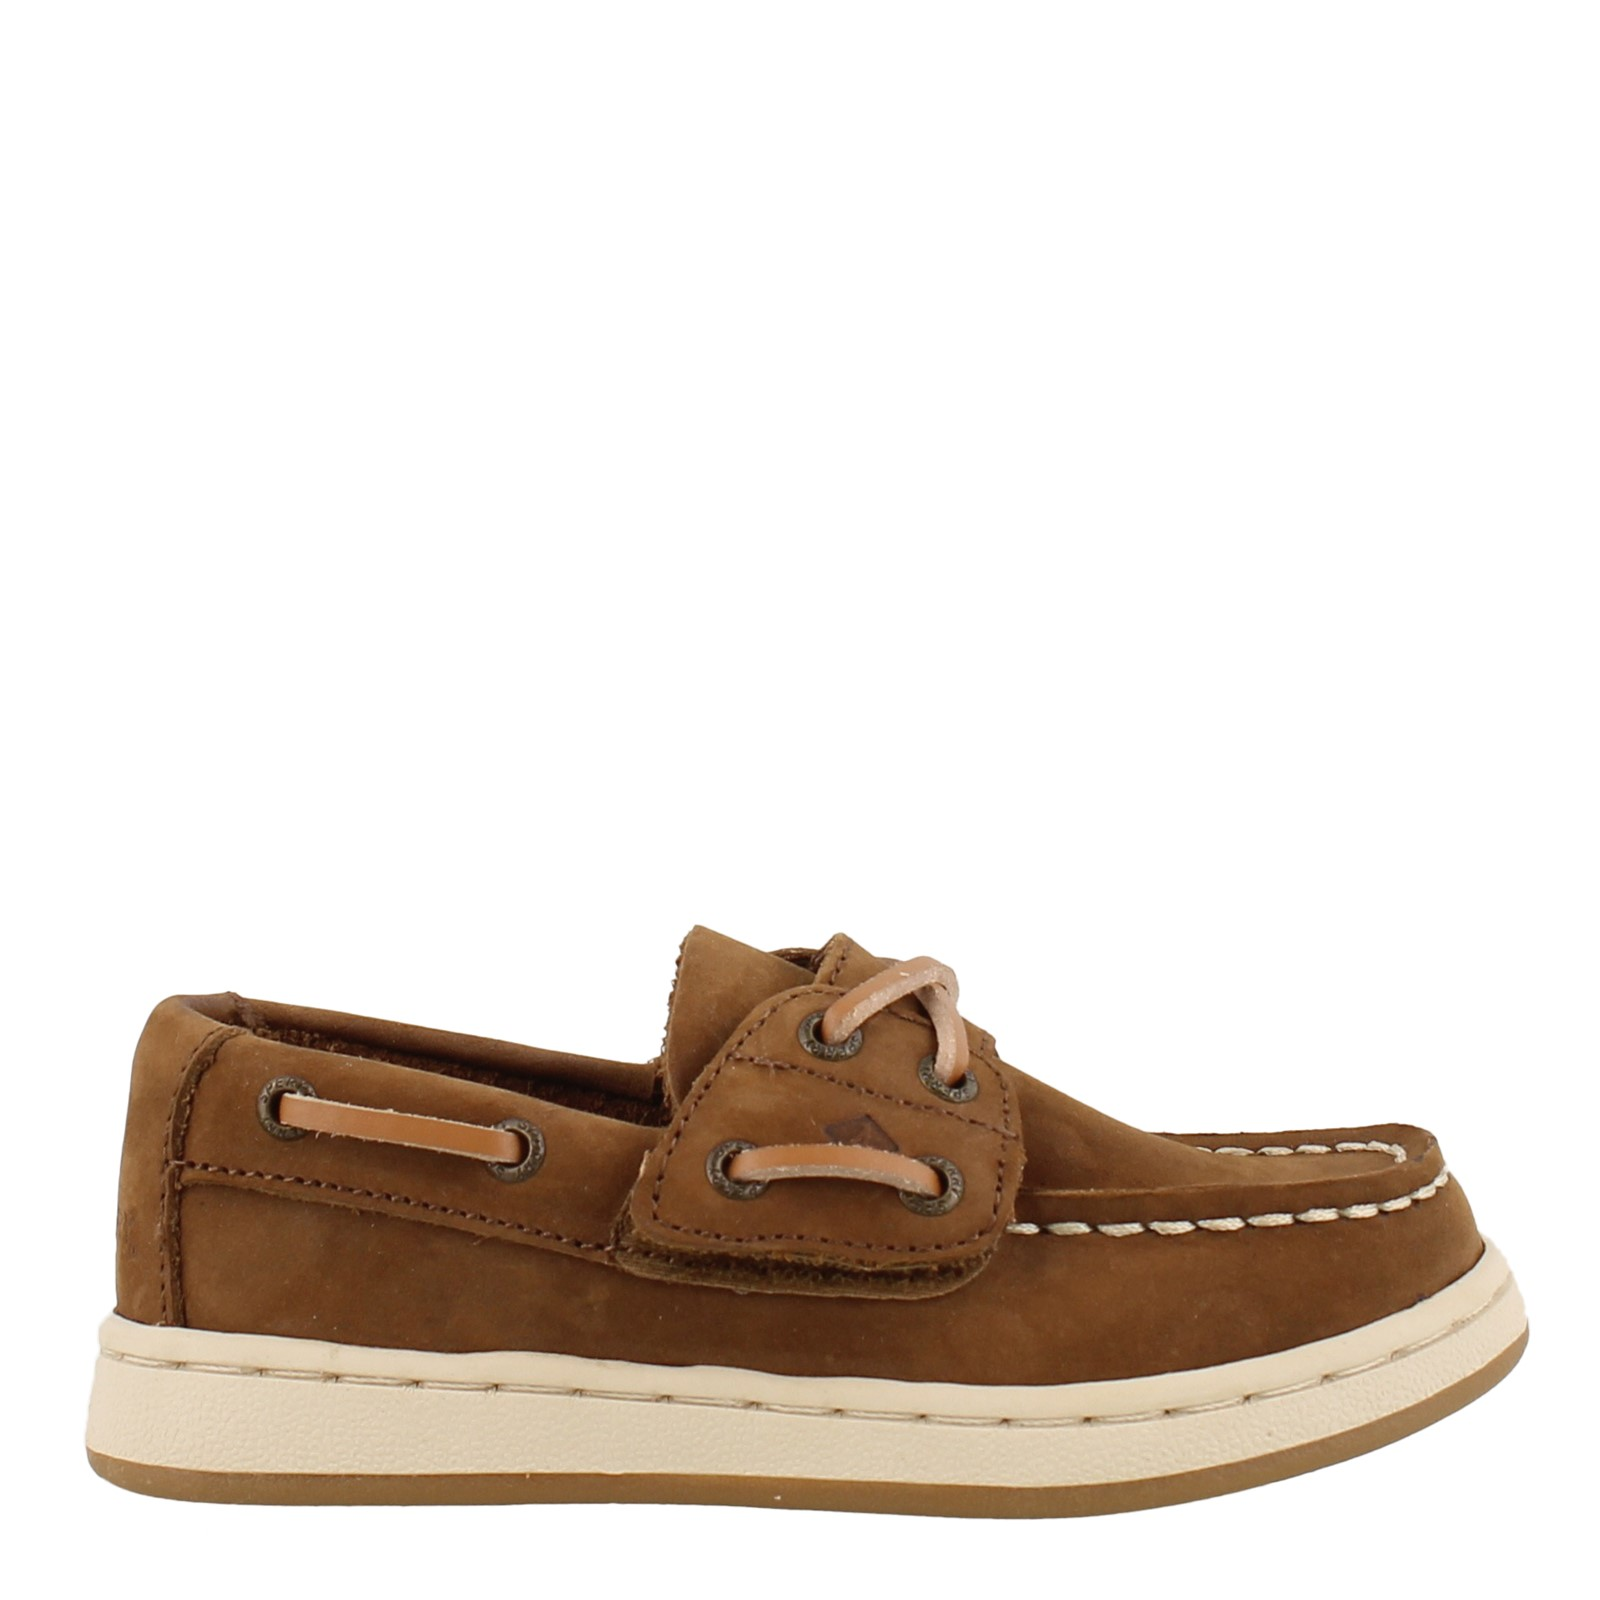 Boy's Sperry Kids, Cup II Jr Boat Shoes